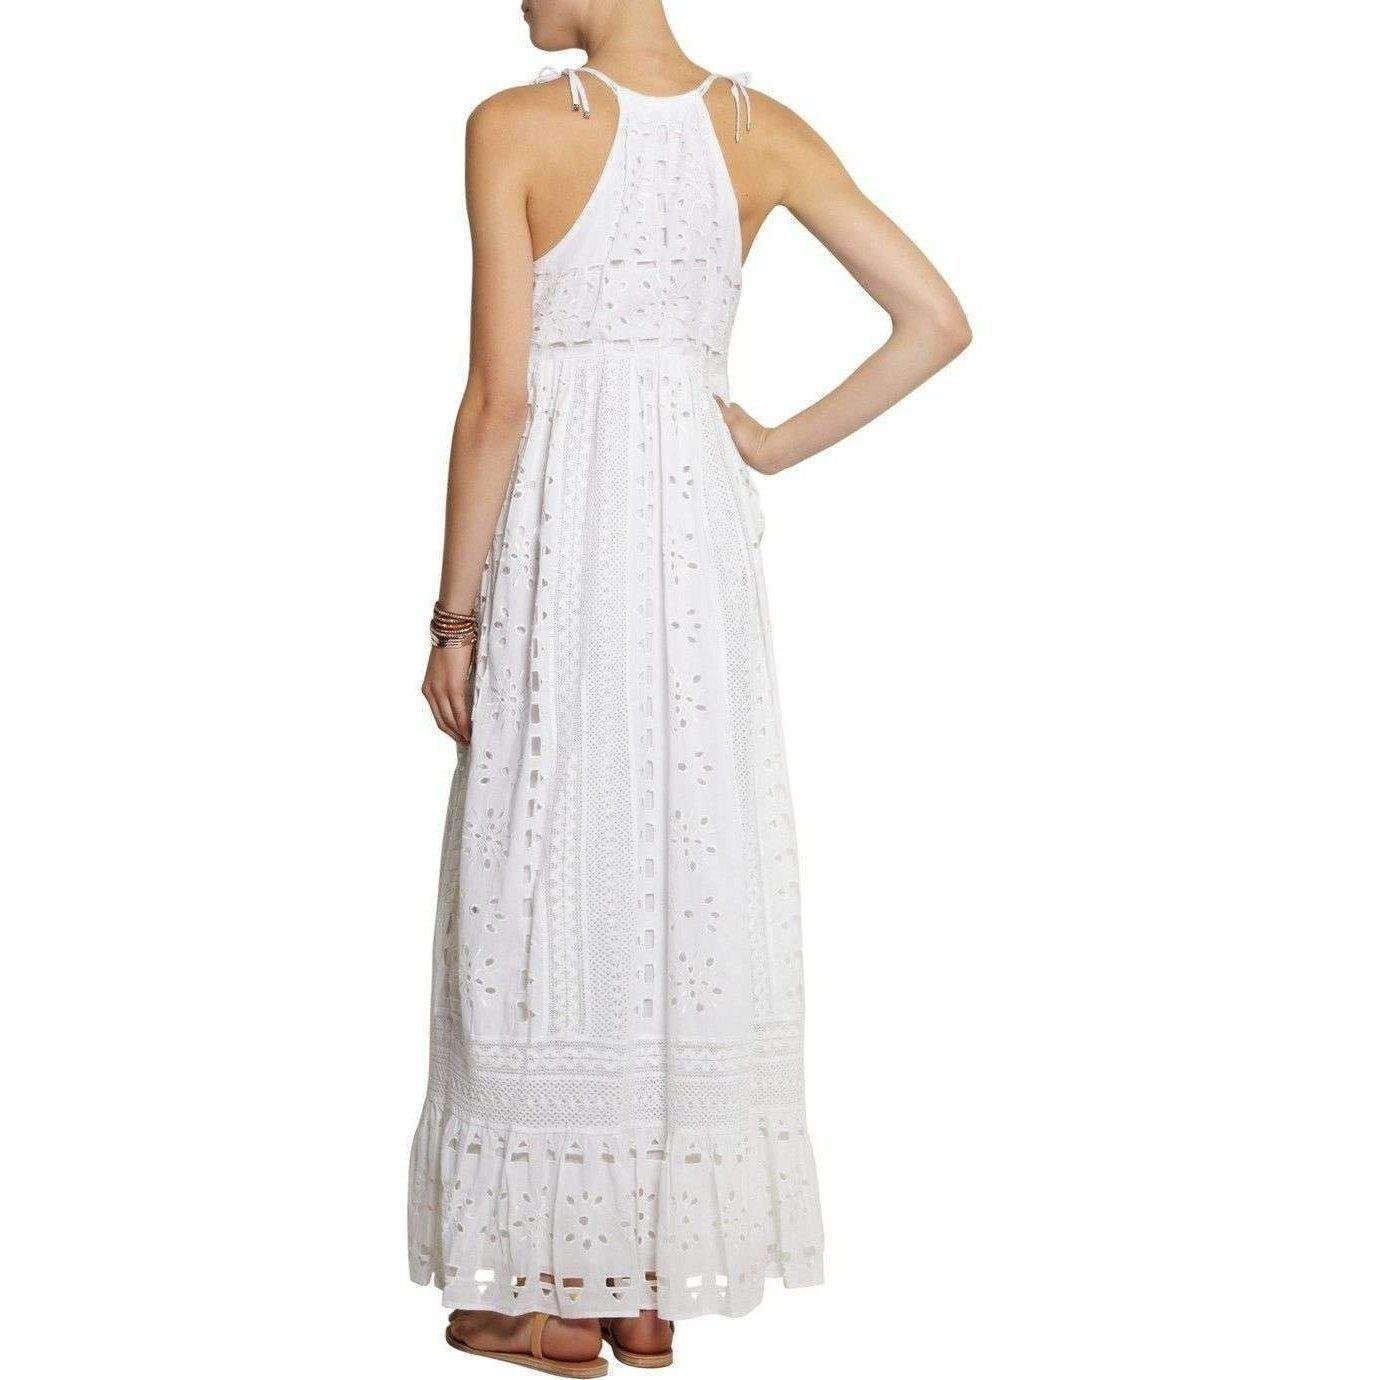 Lyst - Michael Kors Michael By White Eyelet Maxi Peasant Dress in White b4d2faf2e